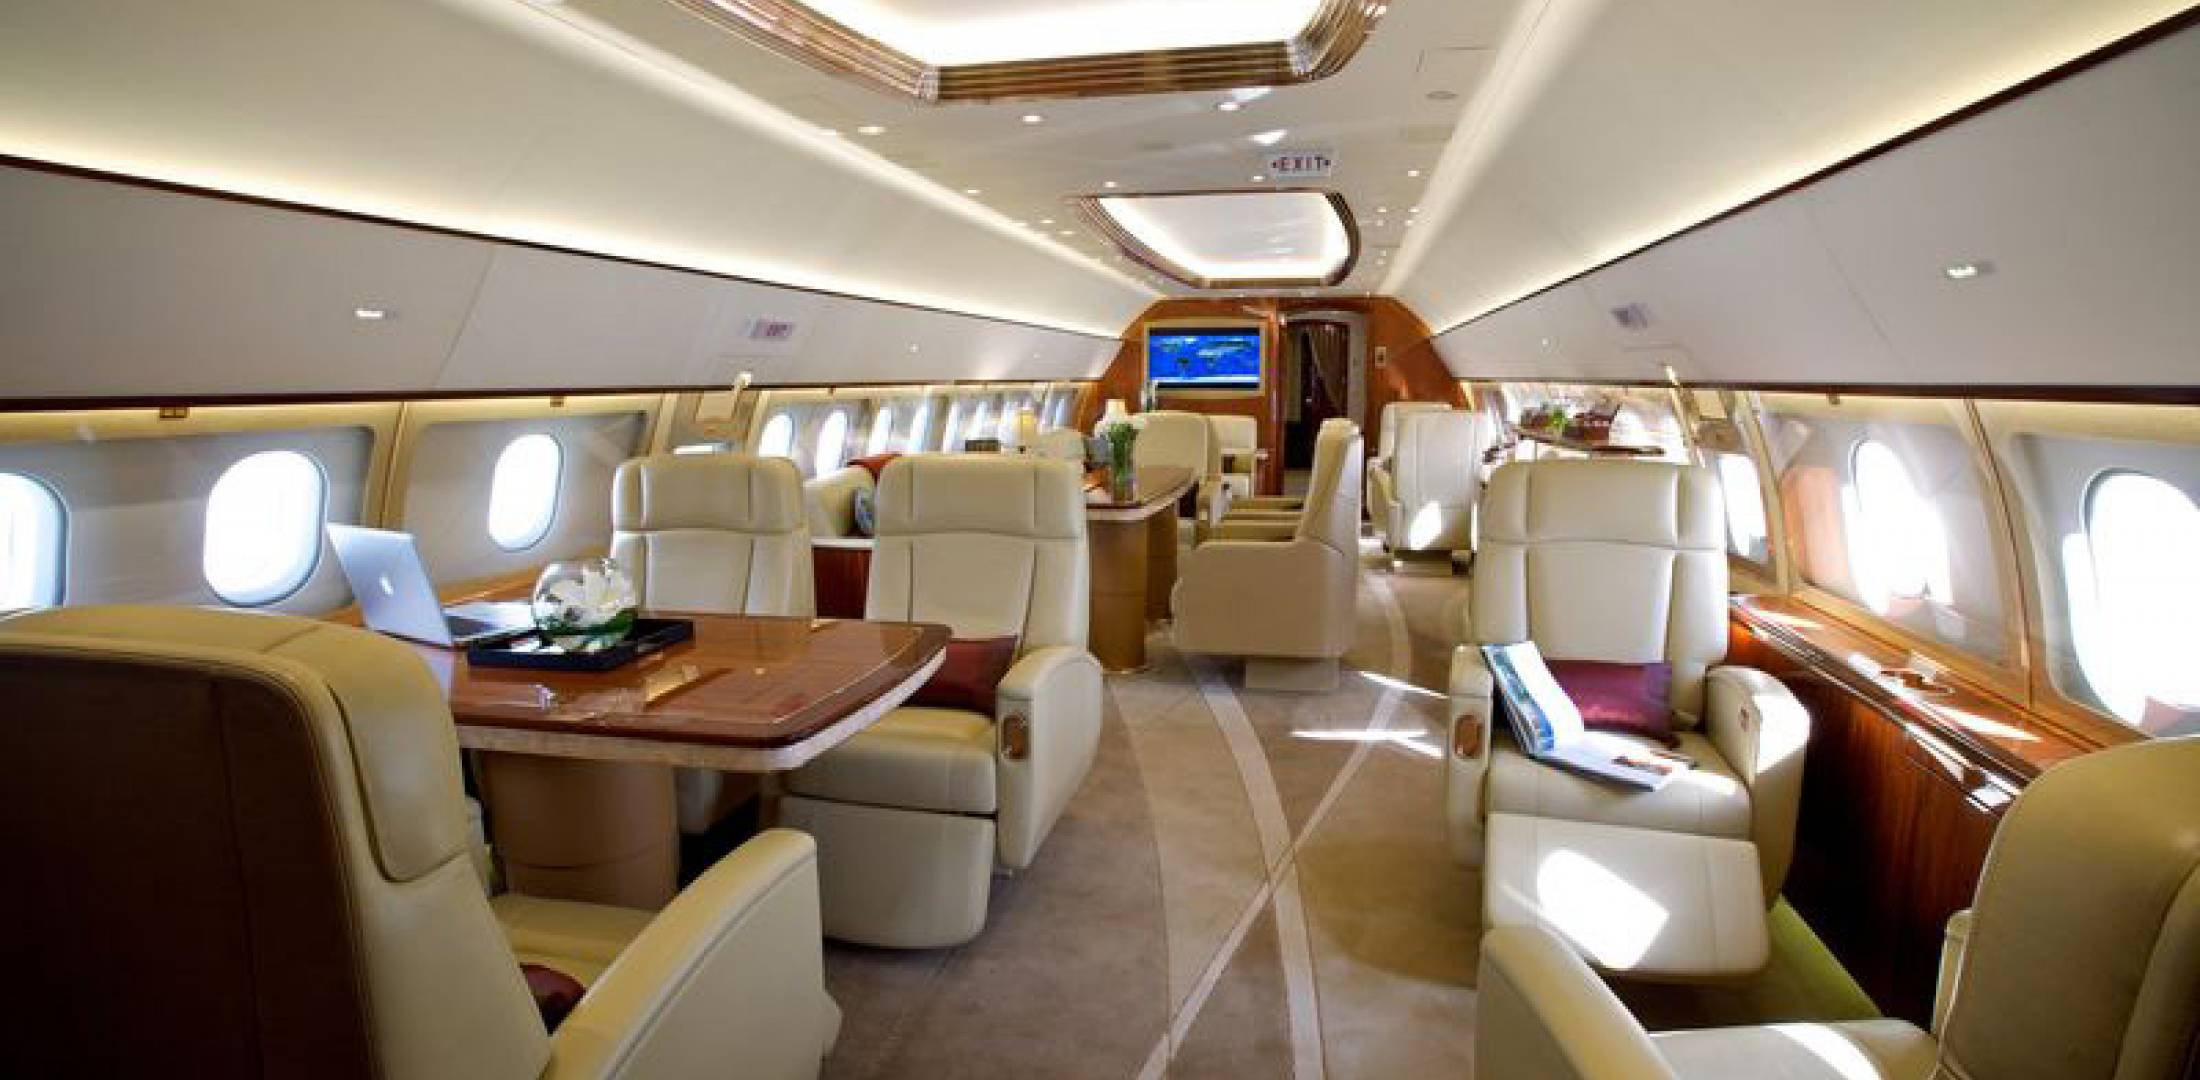 Beautiful Comlux Aviationu0027s Facility In Indianapolis Performs Luxury Cabin  Completions Like This ACJ319 Aircraft. [Photo: Comlux]